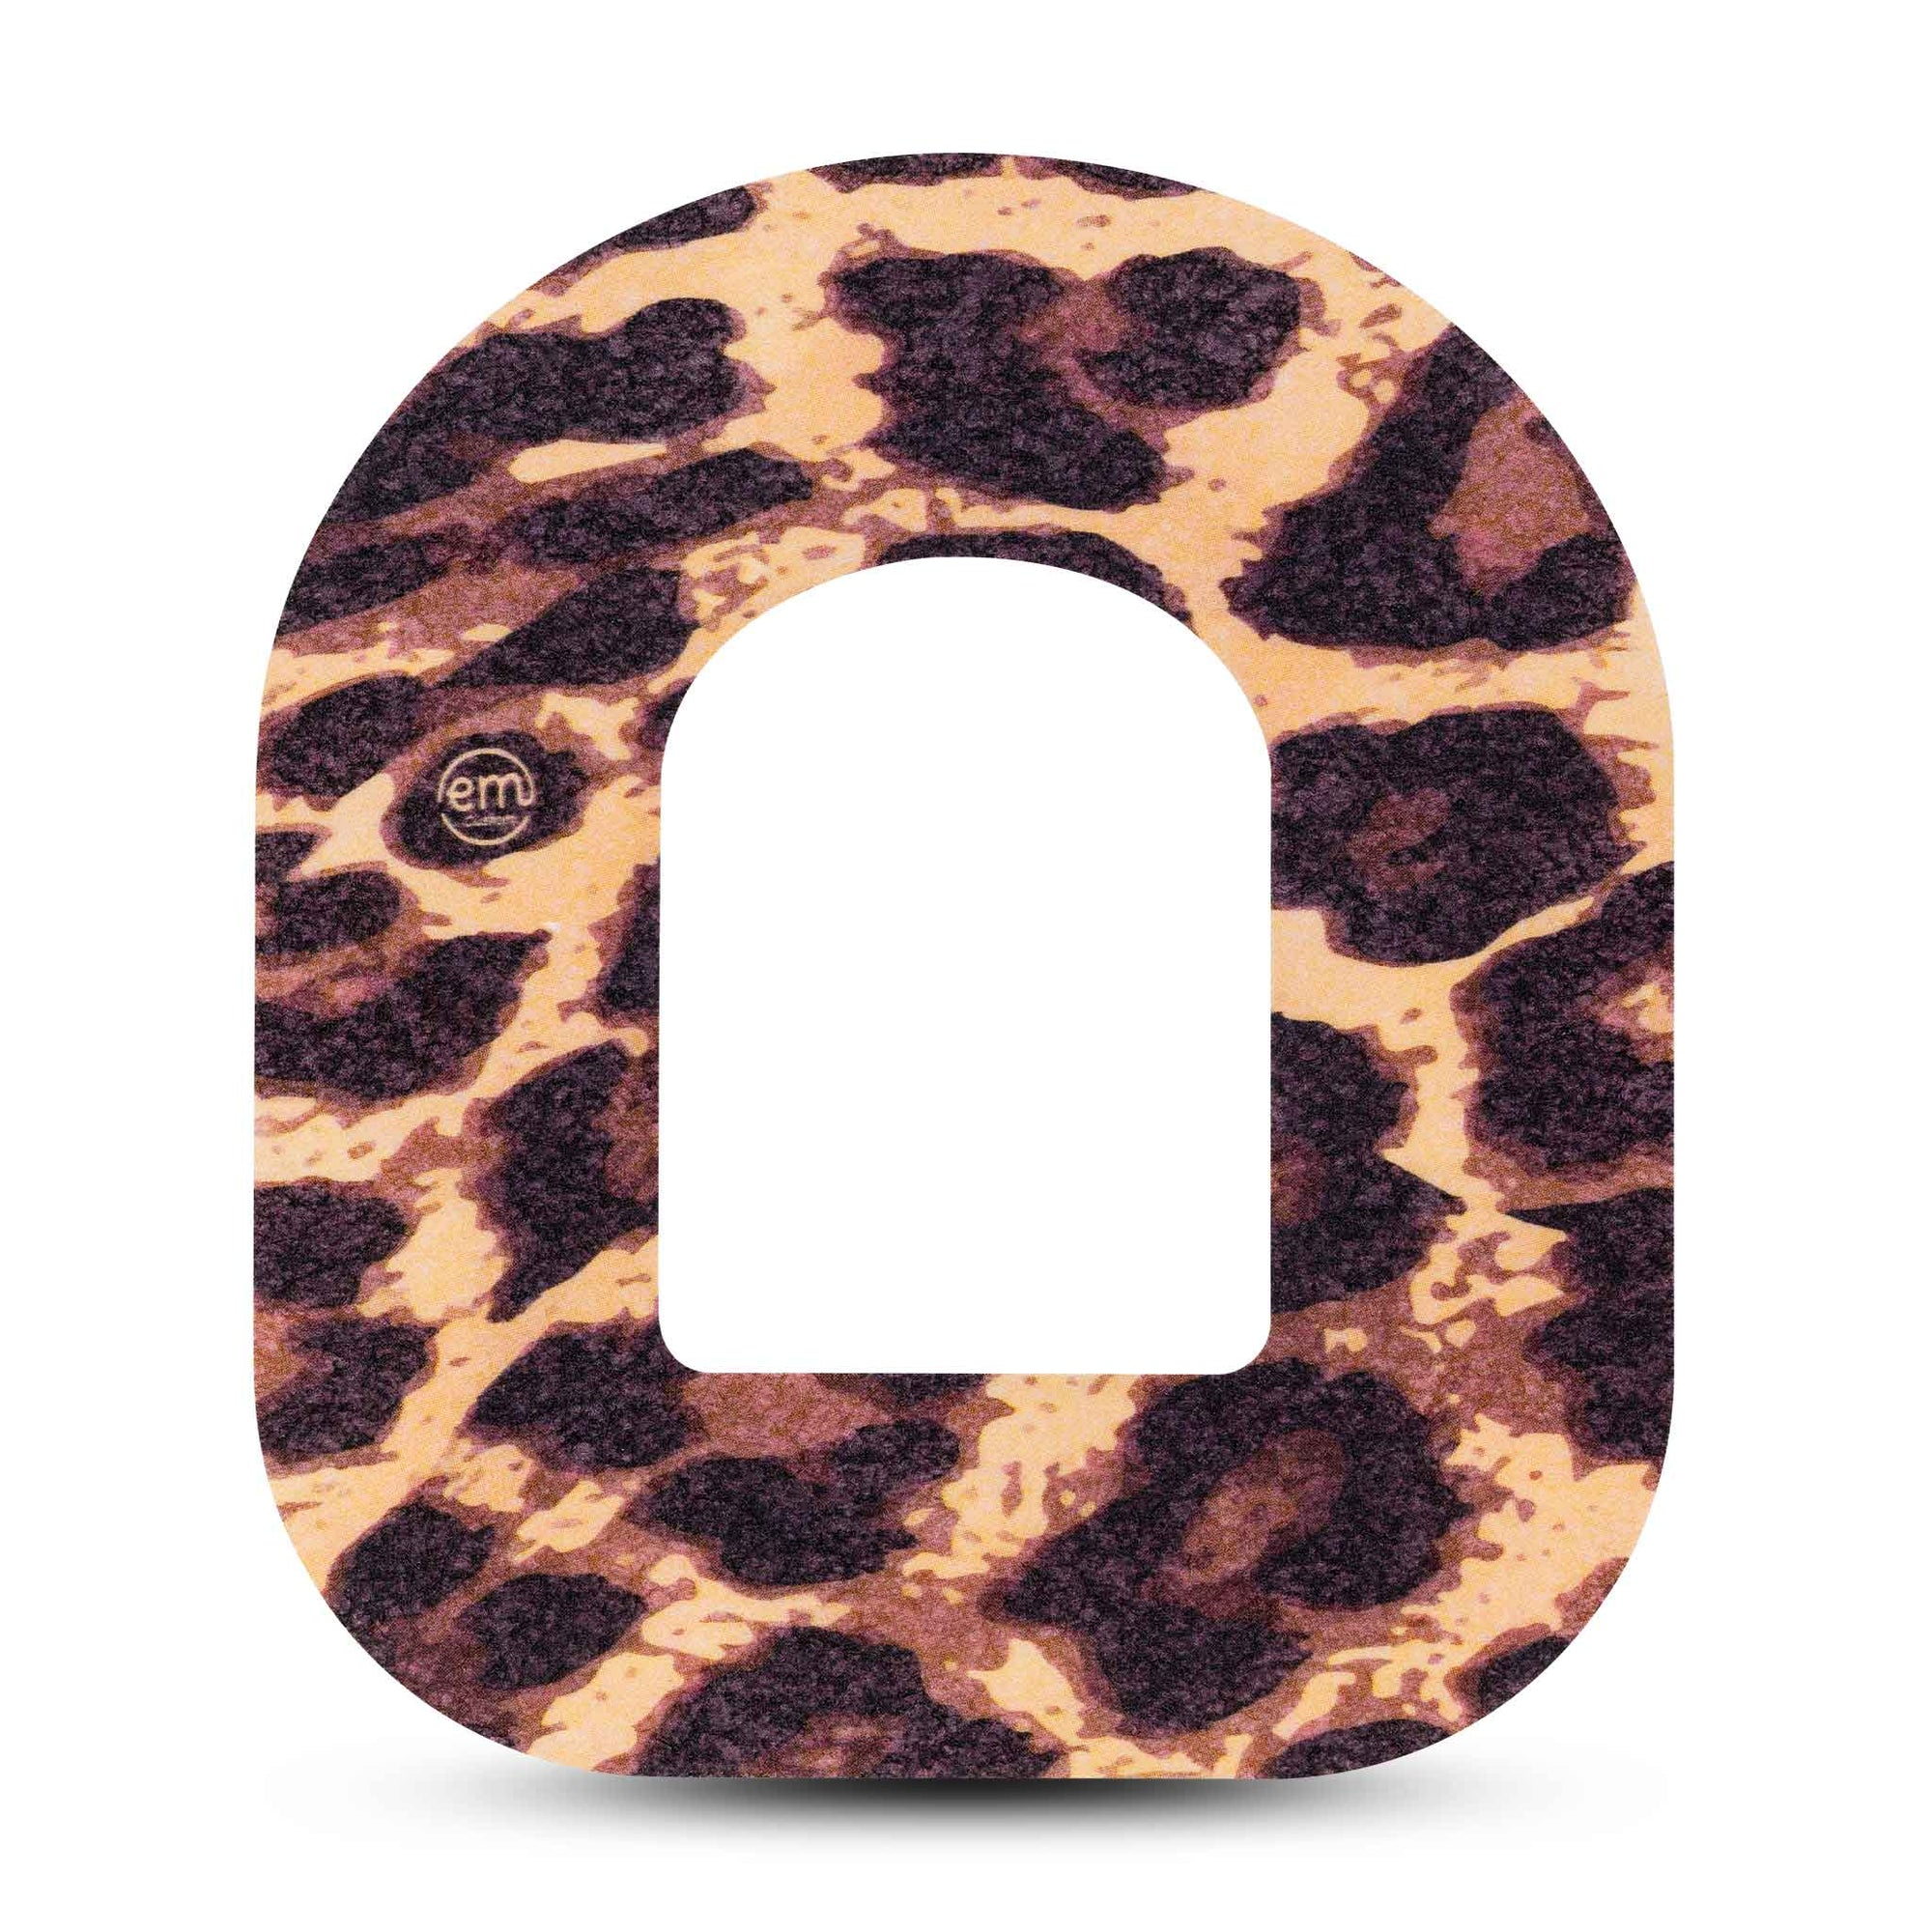 Leopard Print Pod CMG Single Tape ExpressionMed